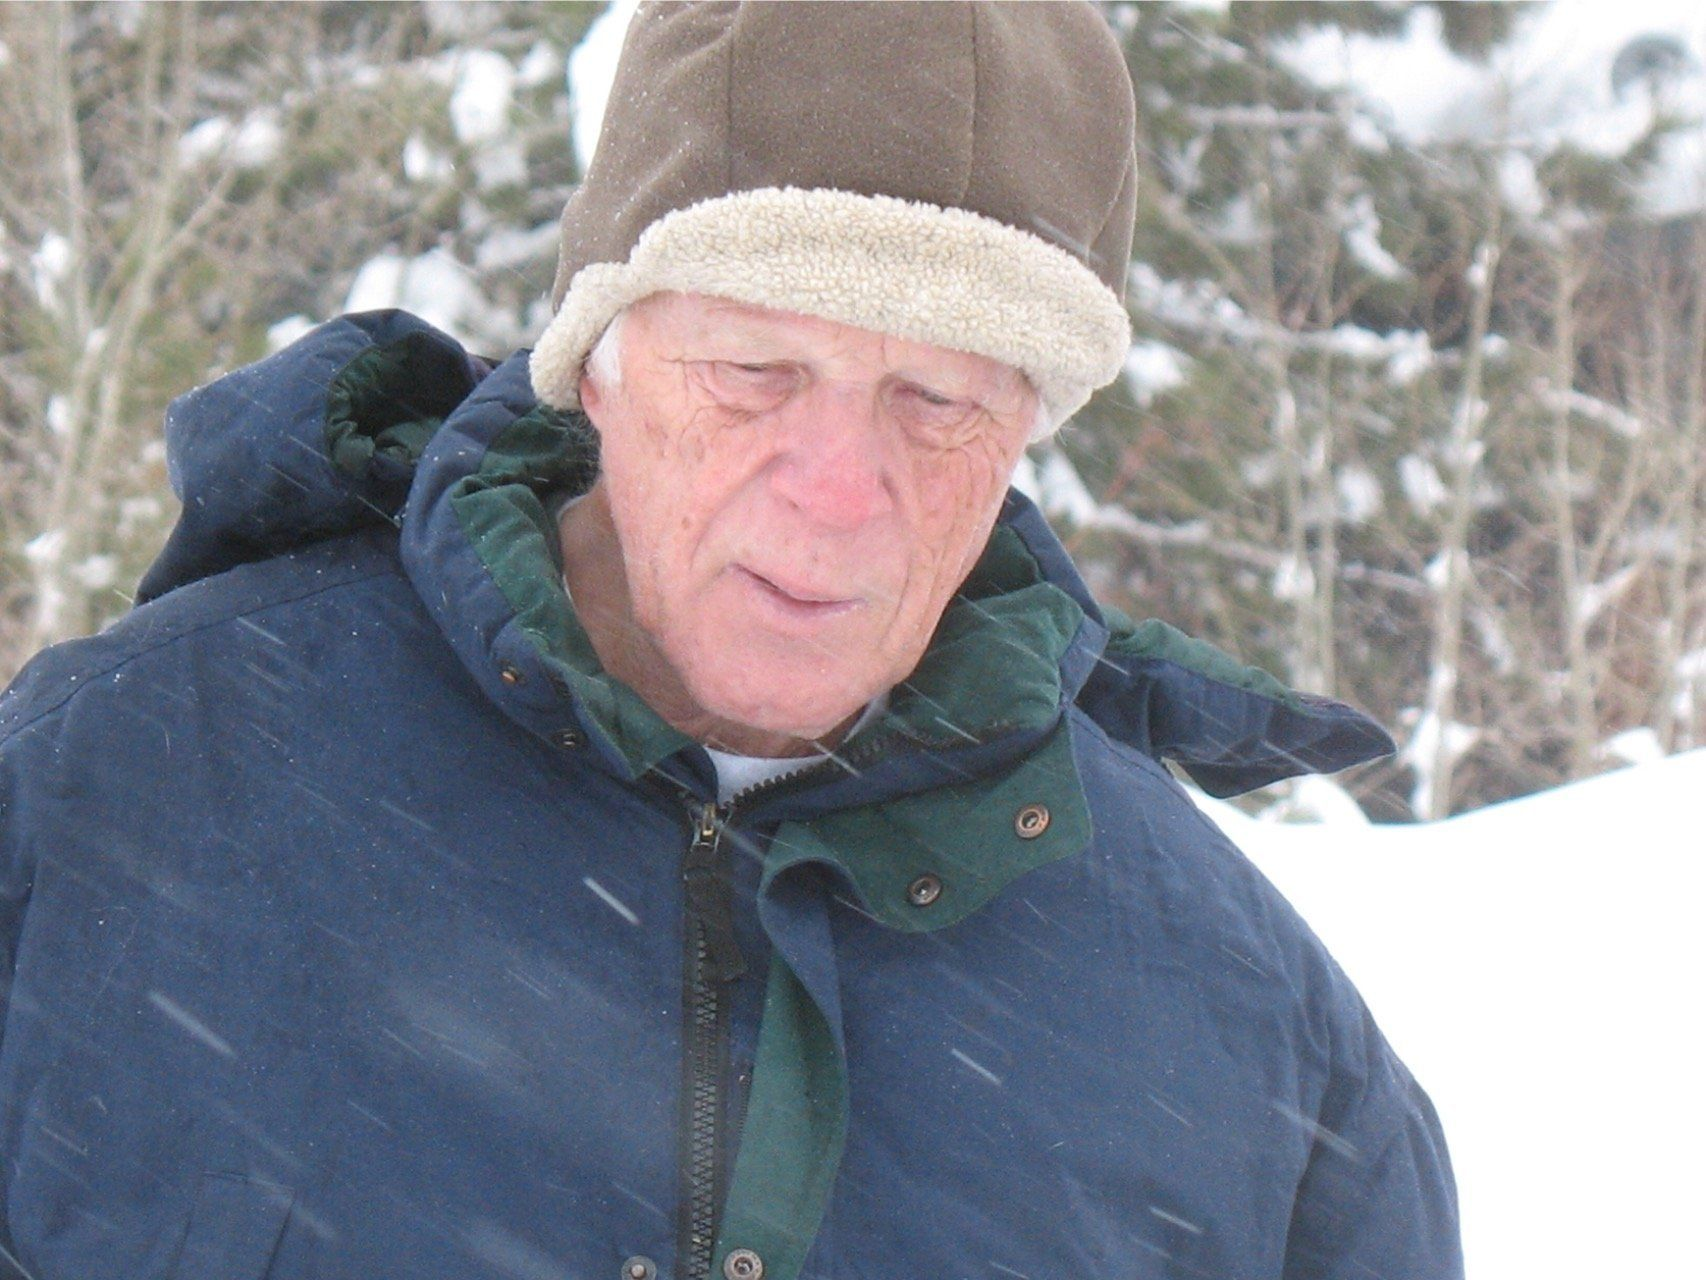 Vic Johnson, the author's husband, is pictured here during a 2014 ski trip. He died on Jan. 4, 2017.